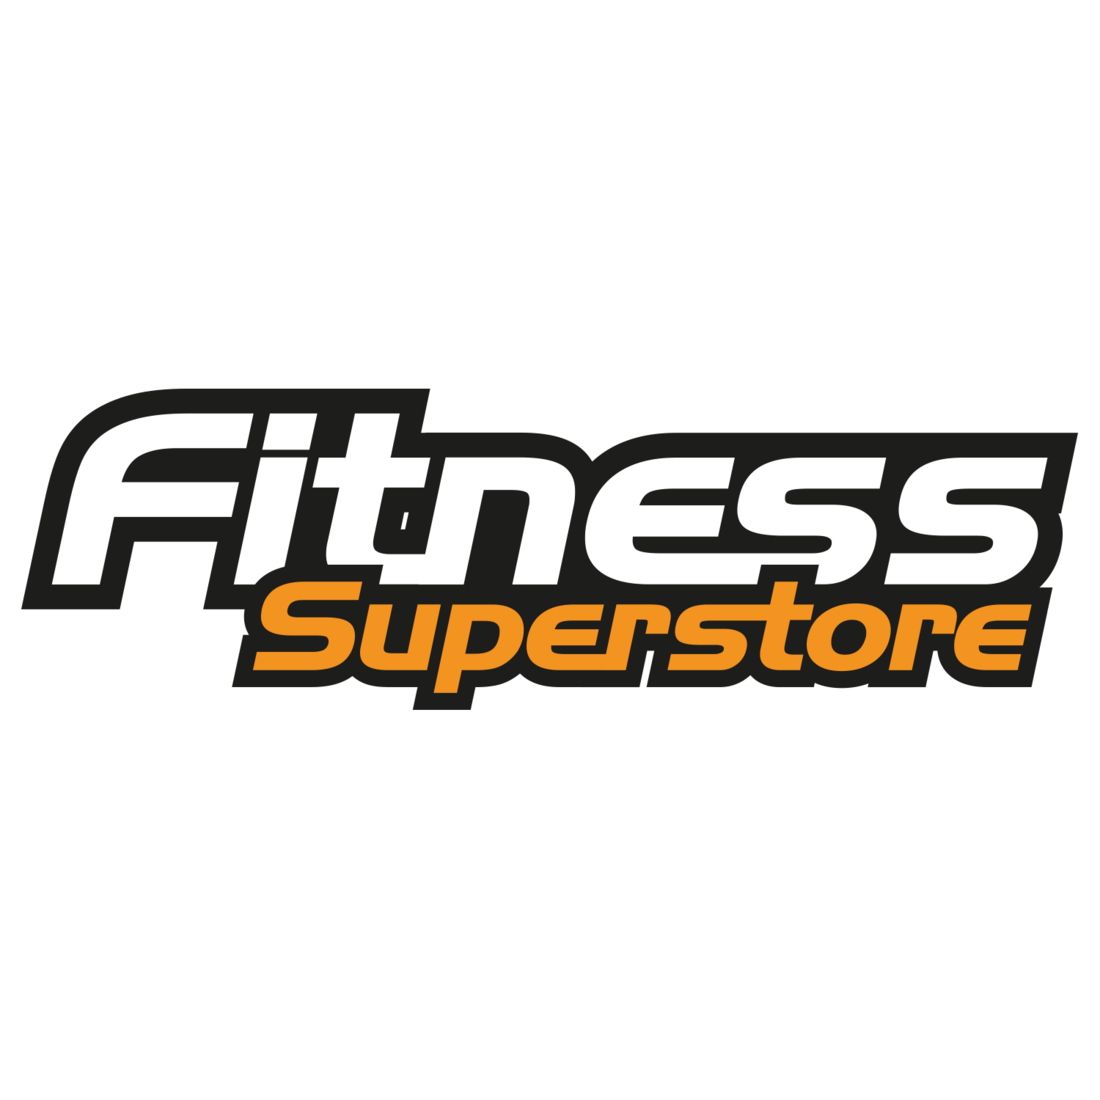 Fitness Superstore Treadmill Installation Service (6-9 working days. Surcharges may apply outside a 100 mile radius of Northampton)